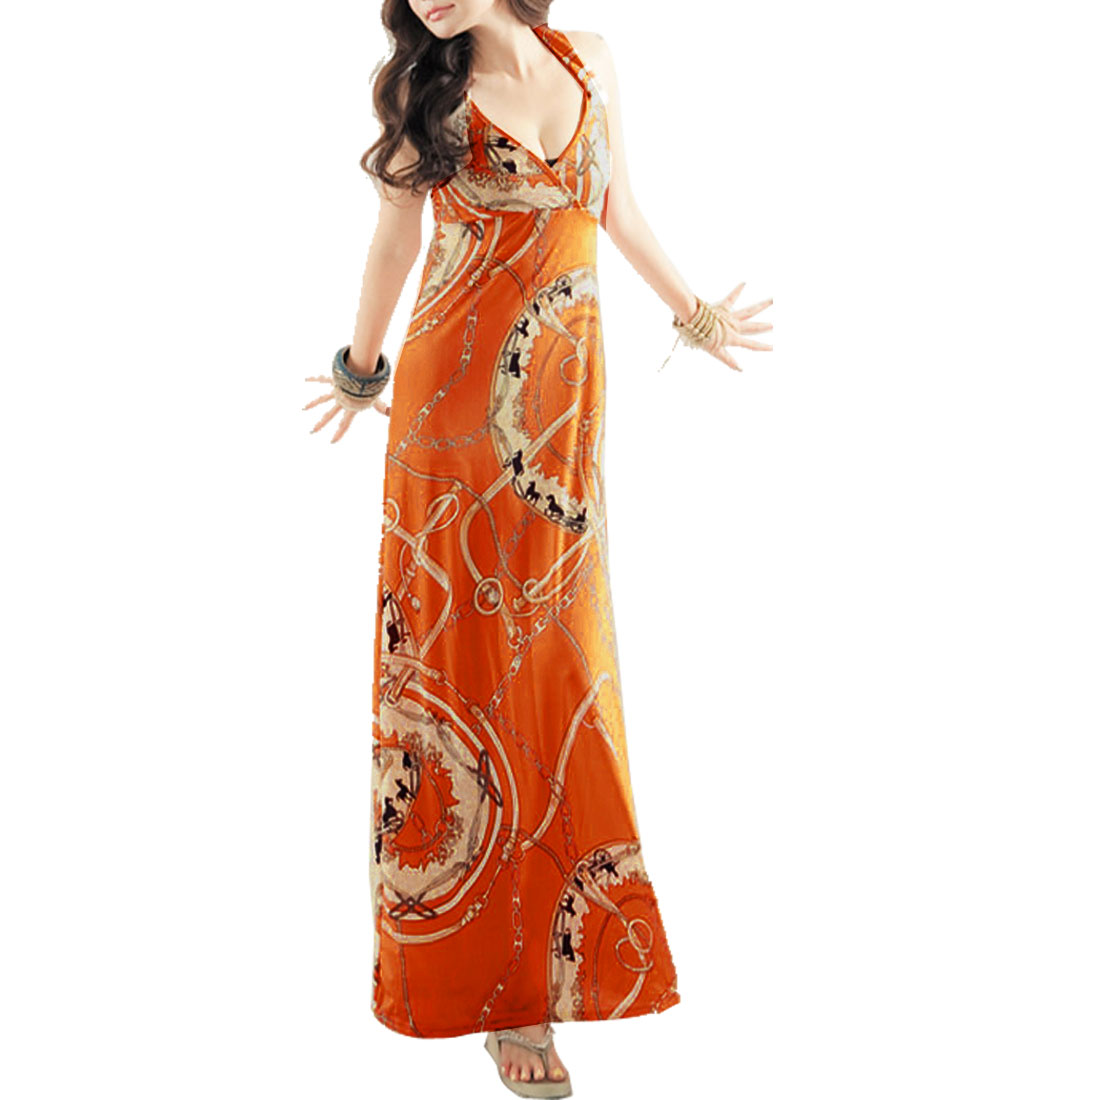 Orange Sleeveless Elastic Chain Printed Adjustable Strap Dress for Women XS